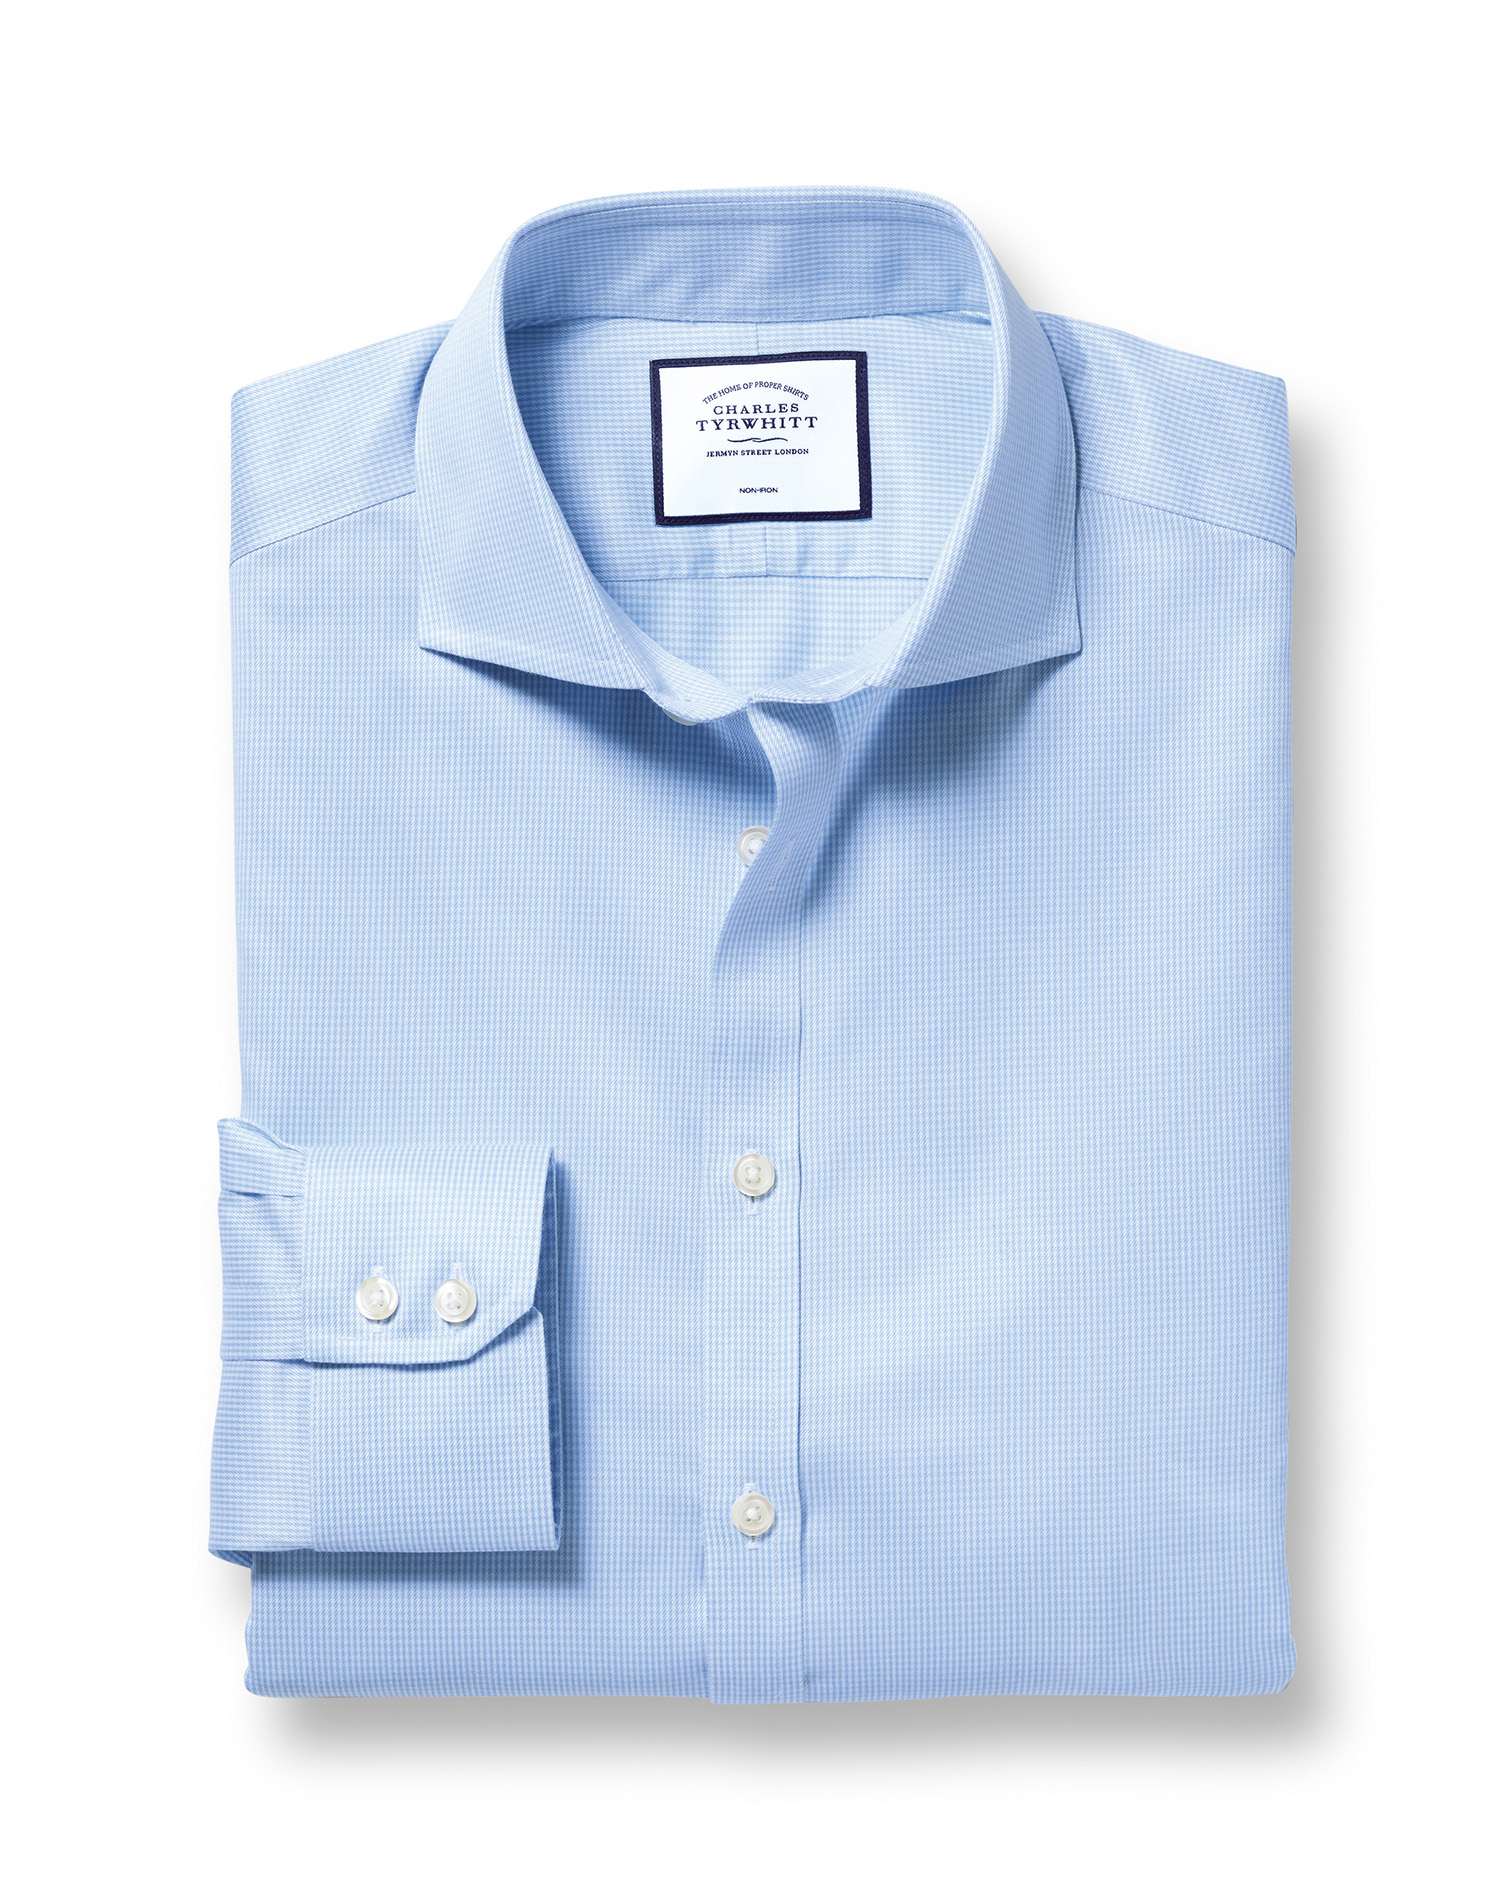 Slim Fit Cutaway Non-Iron Puppytooth Sky Blue Cotton Formal Shirt Single Cuff Size 17/37 by Charles